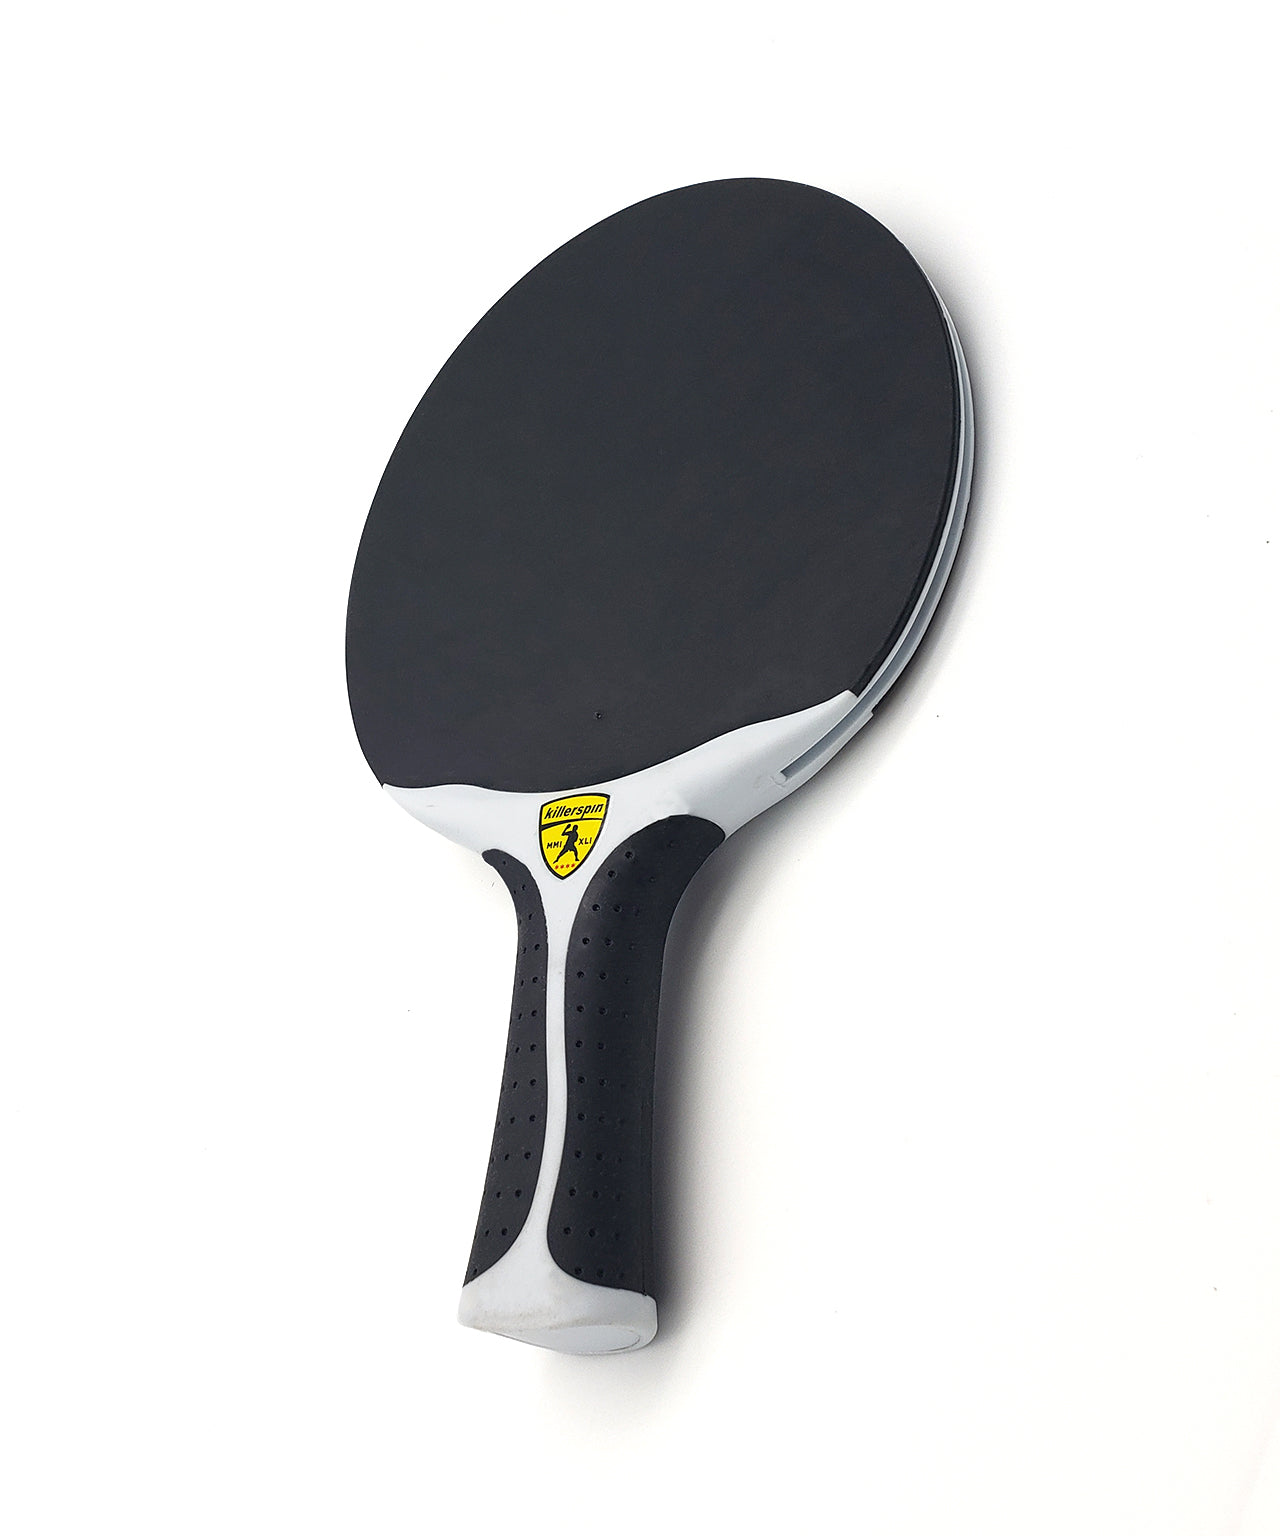 Killerspin Outdoor Ping Pong Paddle Canvas Swirl Black